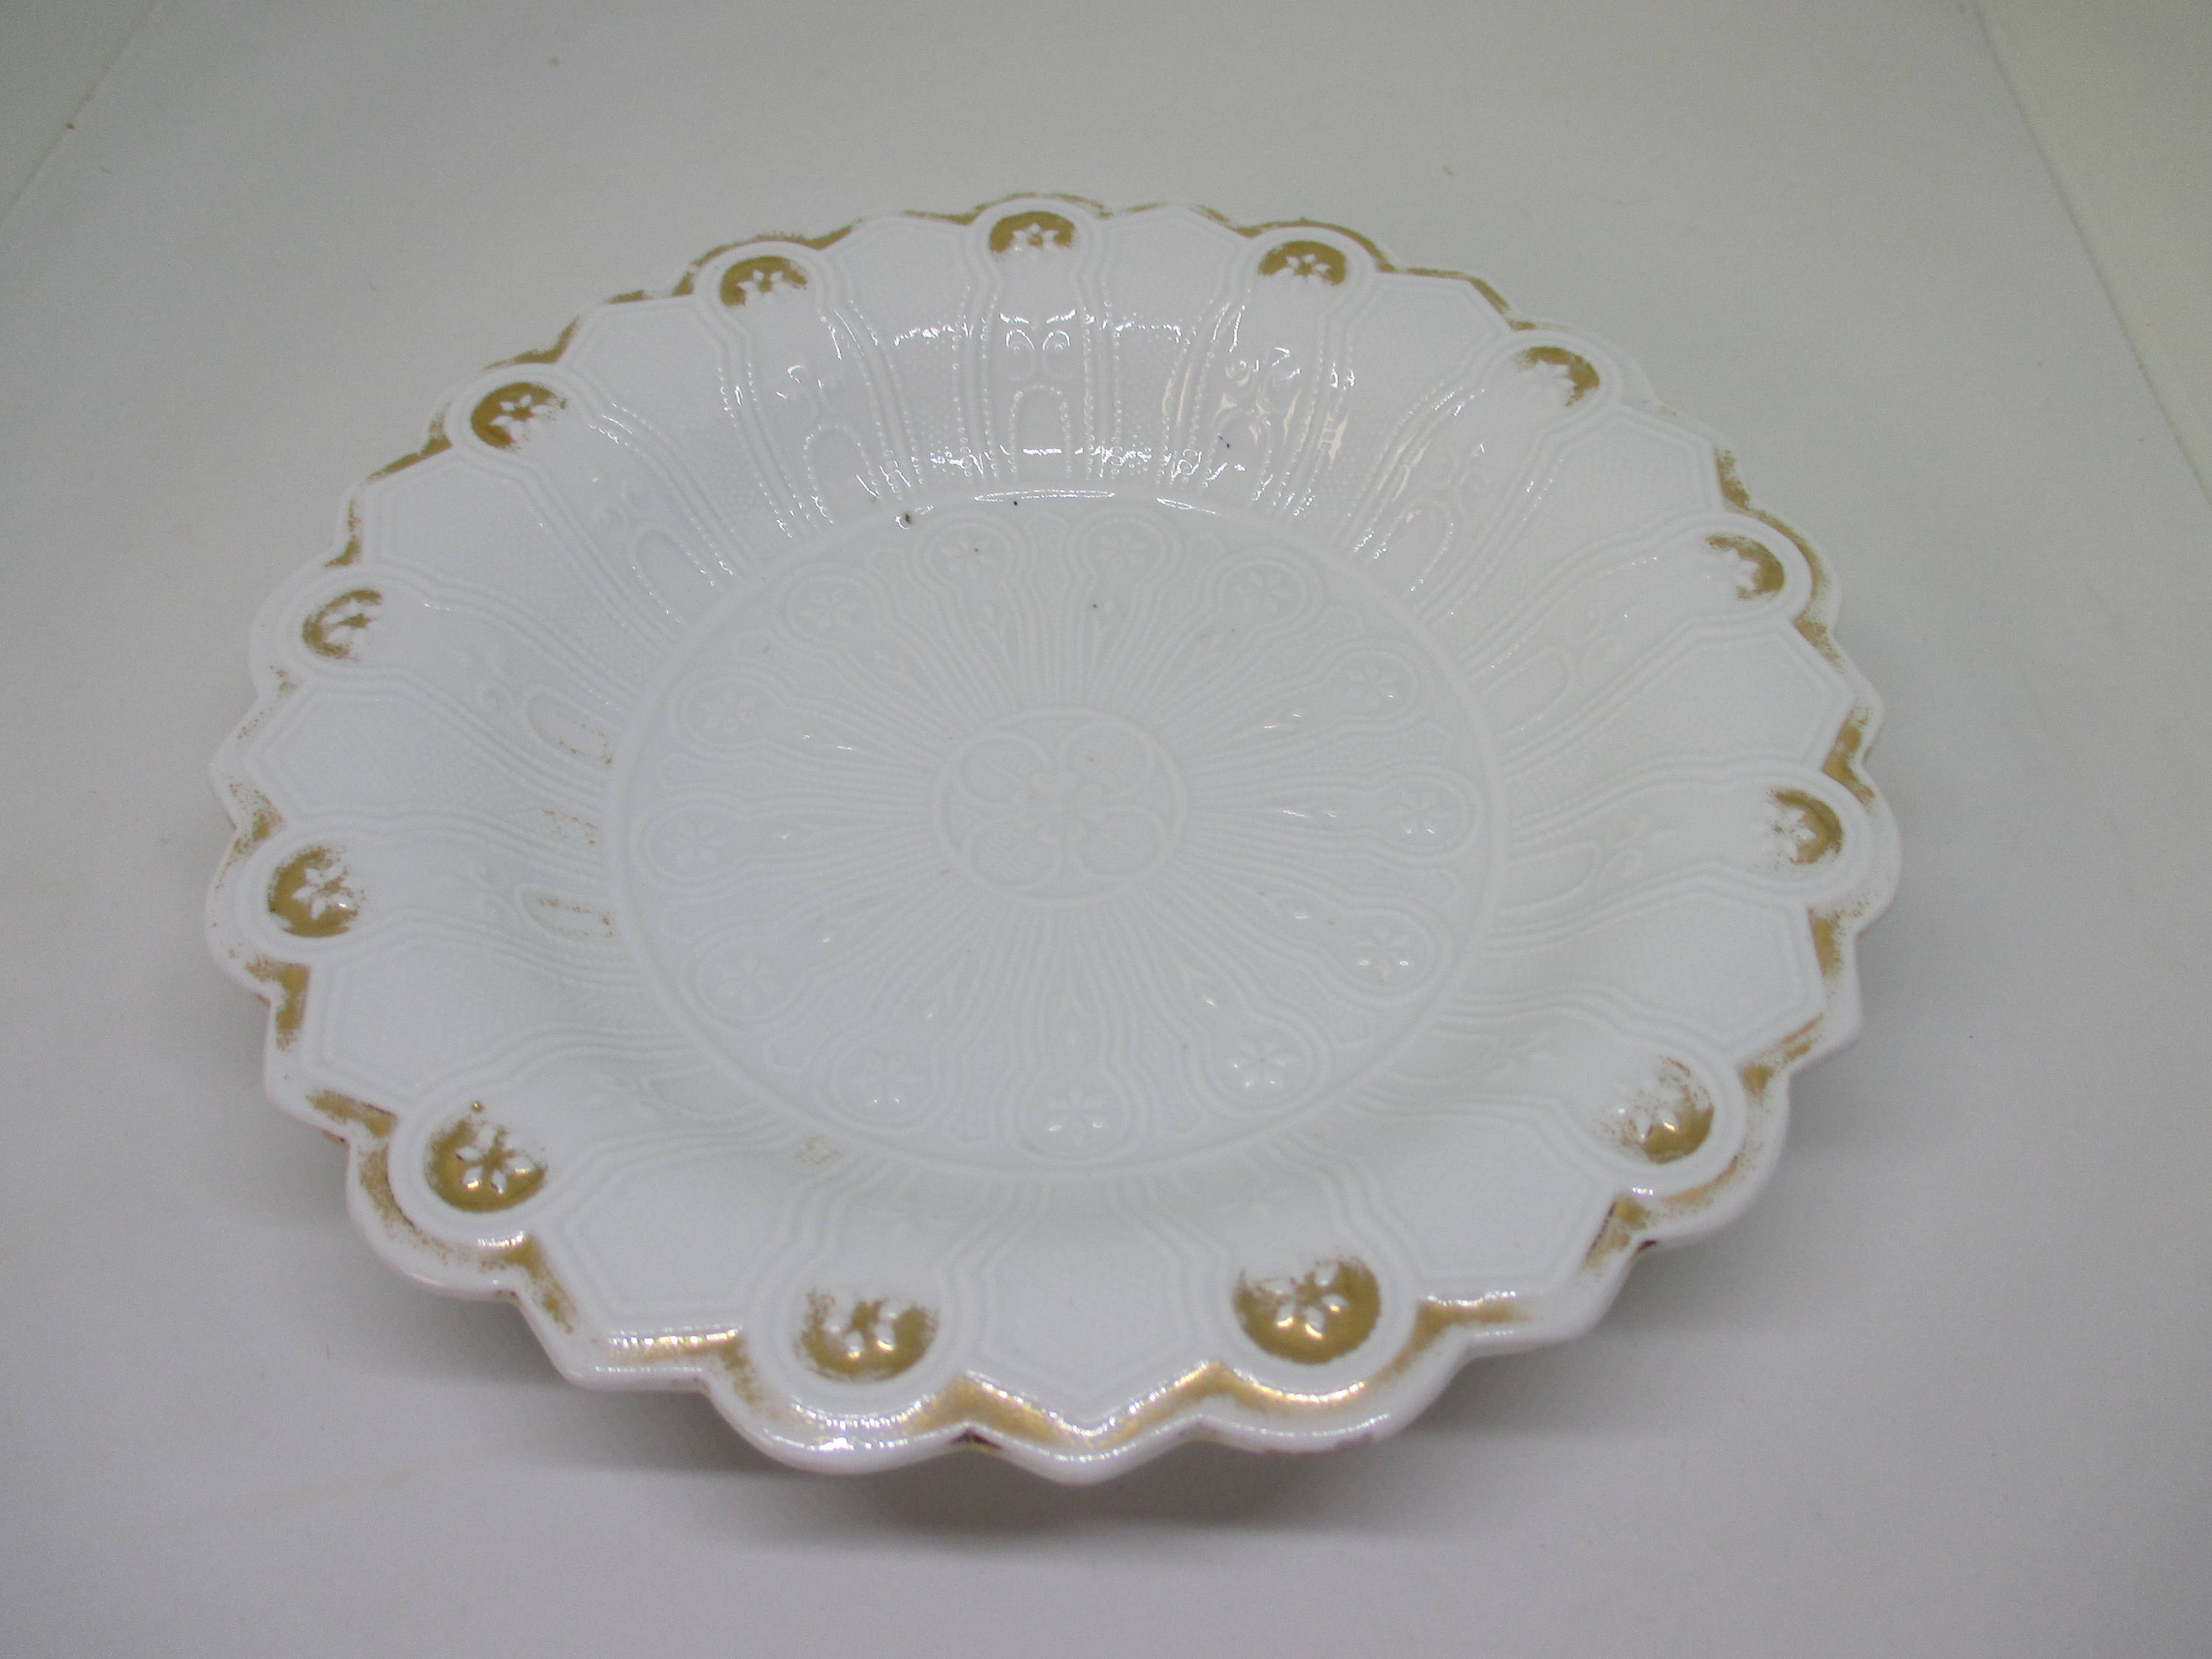 Beautiful Antique Dresden Serving Bowl Ornate pattern Fine bone china 1800's white with gold trim cottage collectible display home kitchen